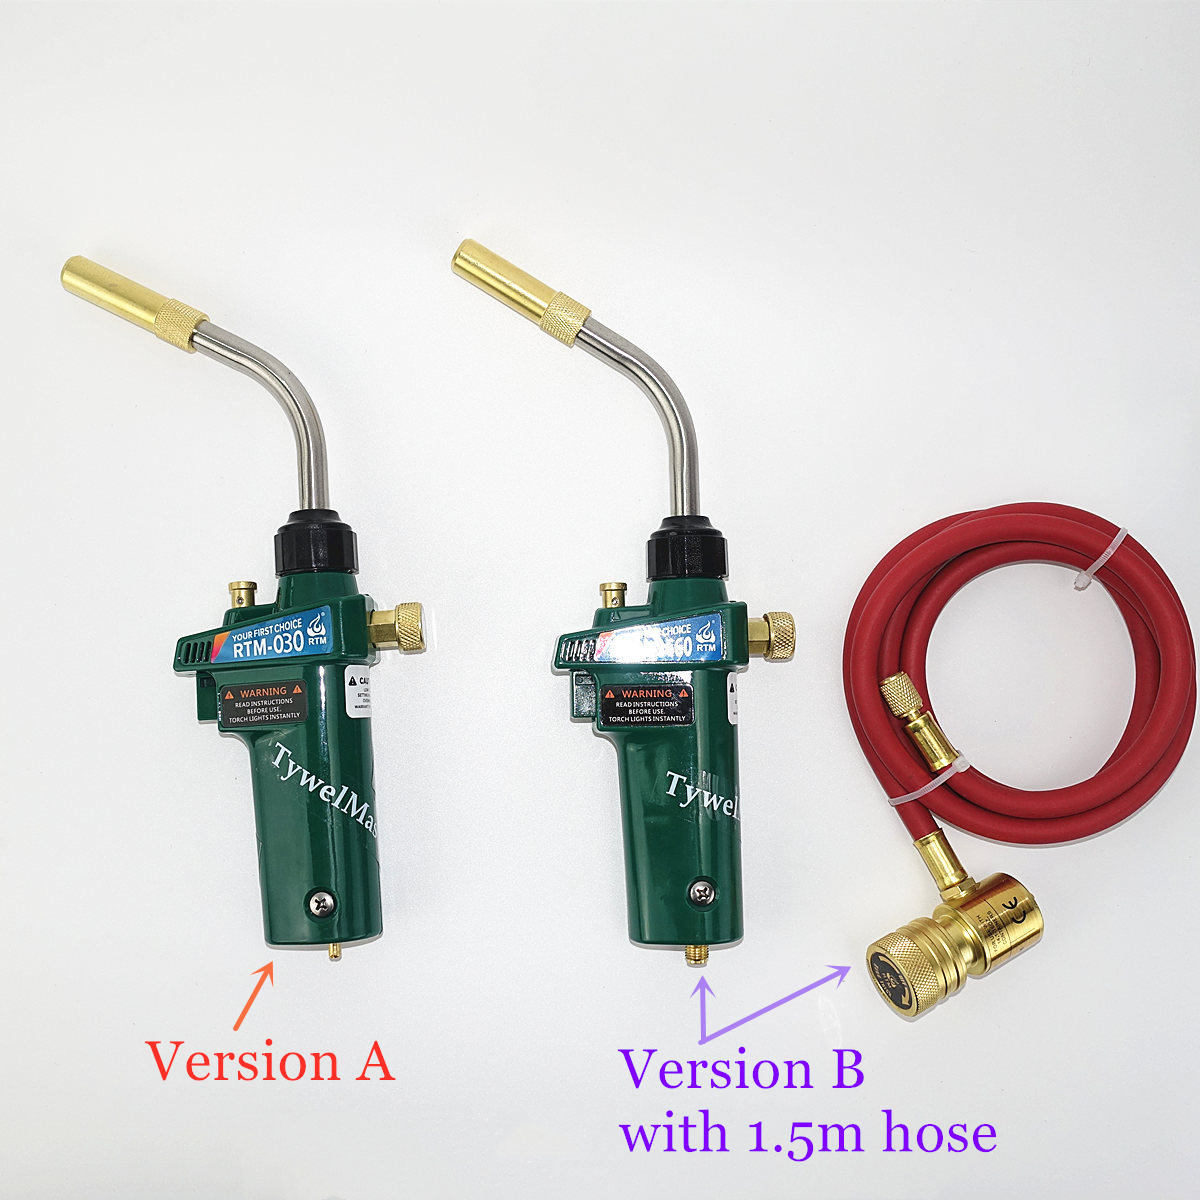 Mapp Welding Torch Piezo Ignition Gas Flame Soldering Tool 1 5m Hose CGA600 BBQ Heating Quenching HVAC Plumbing Brazing Torch